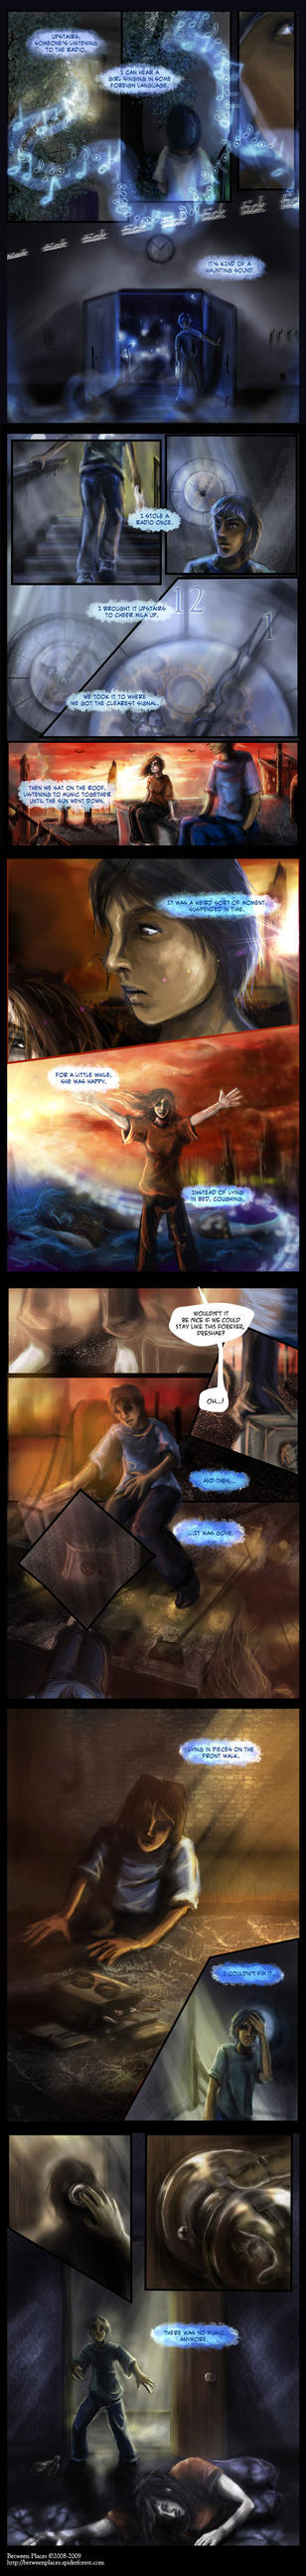 Chapter Six - 'Like a Dream' by calthyechild